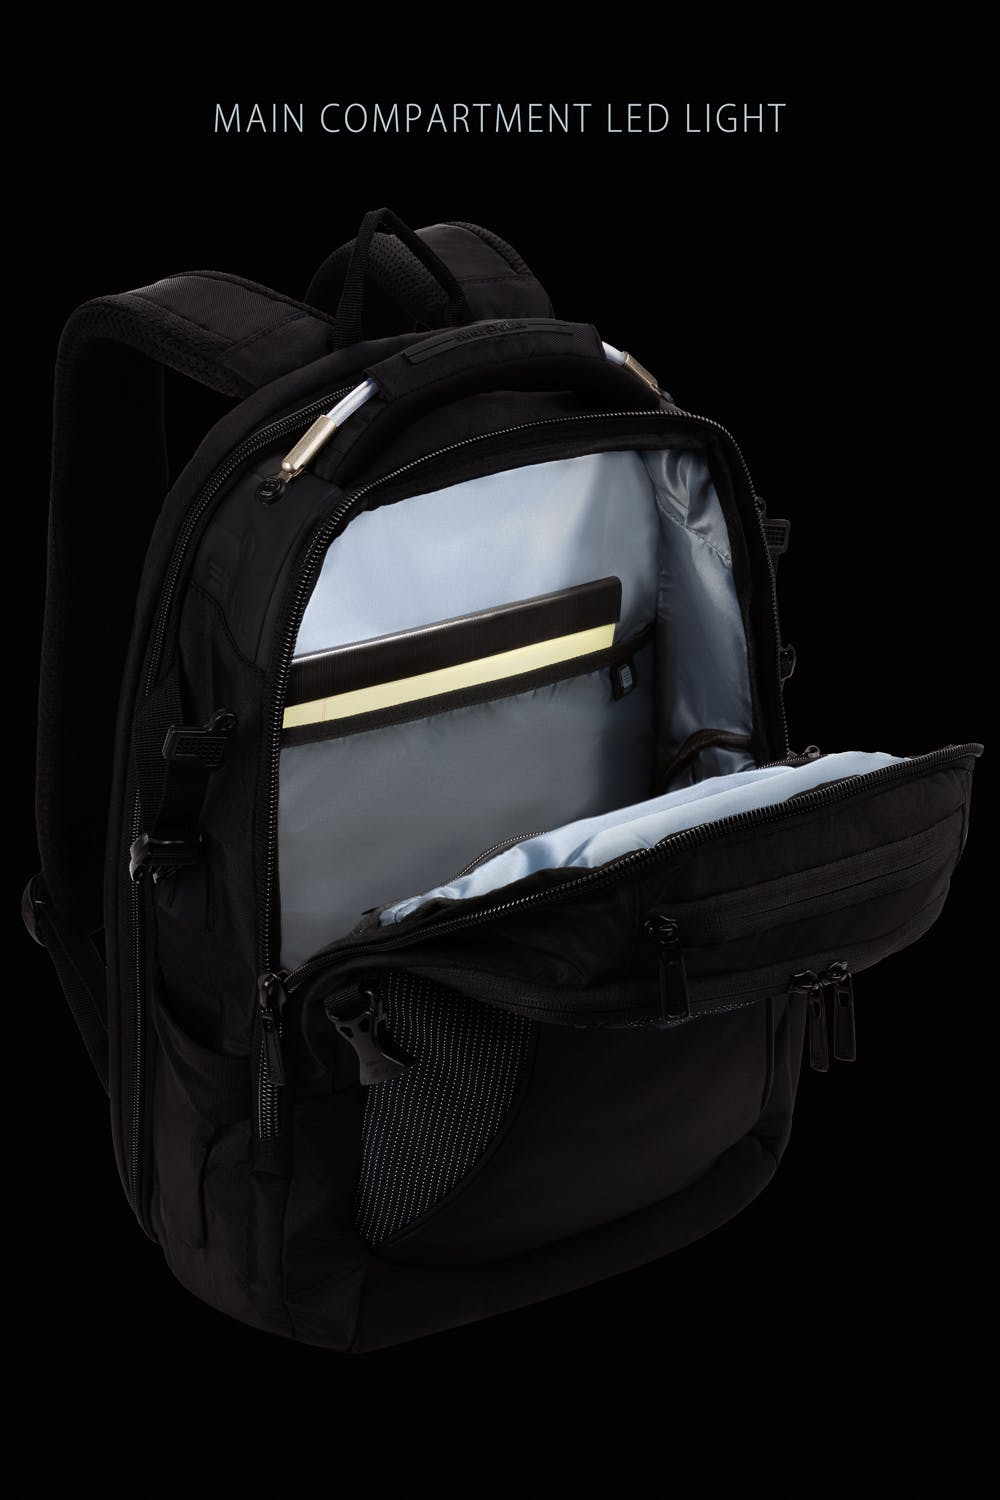 Swissgear 2700 USB ScanSmart Laptop Backpack with LED Light - Black with White Dots